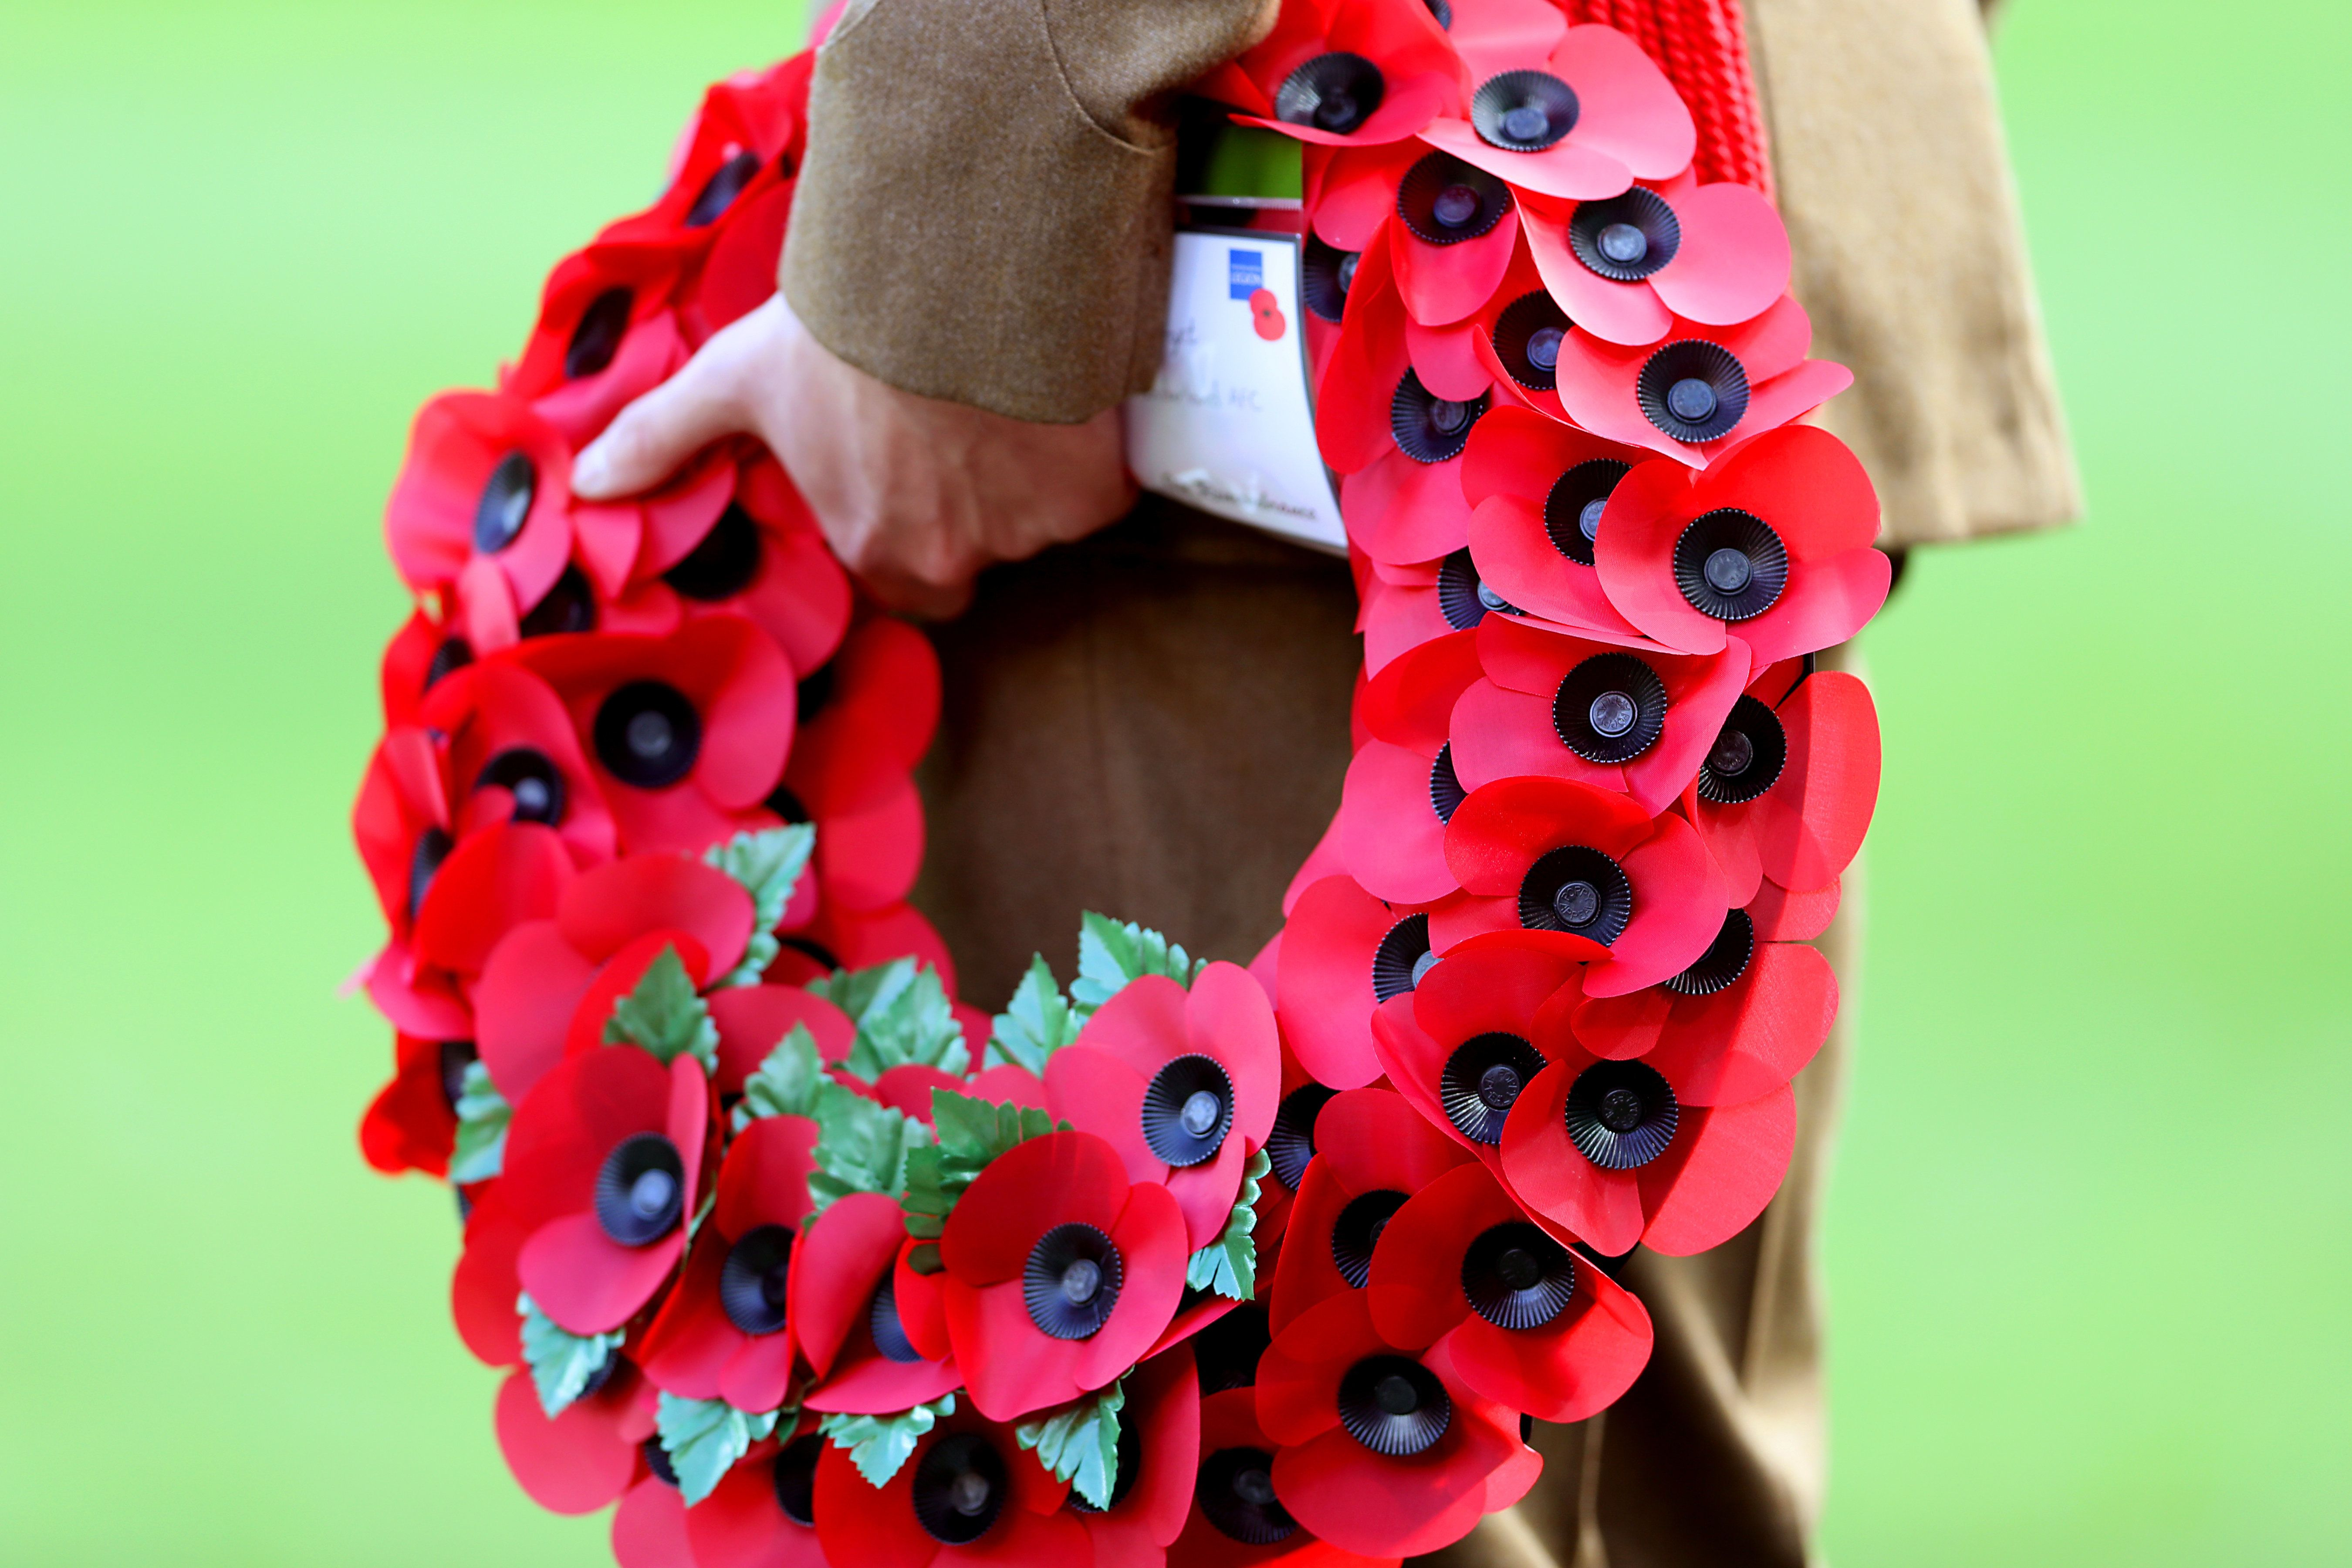 Find Out About The History And Traditions Behind Remembrance Day With Our